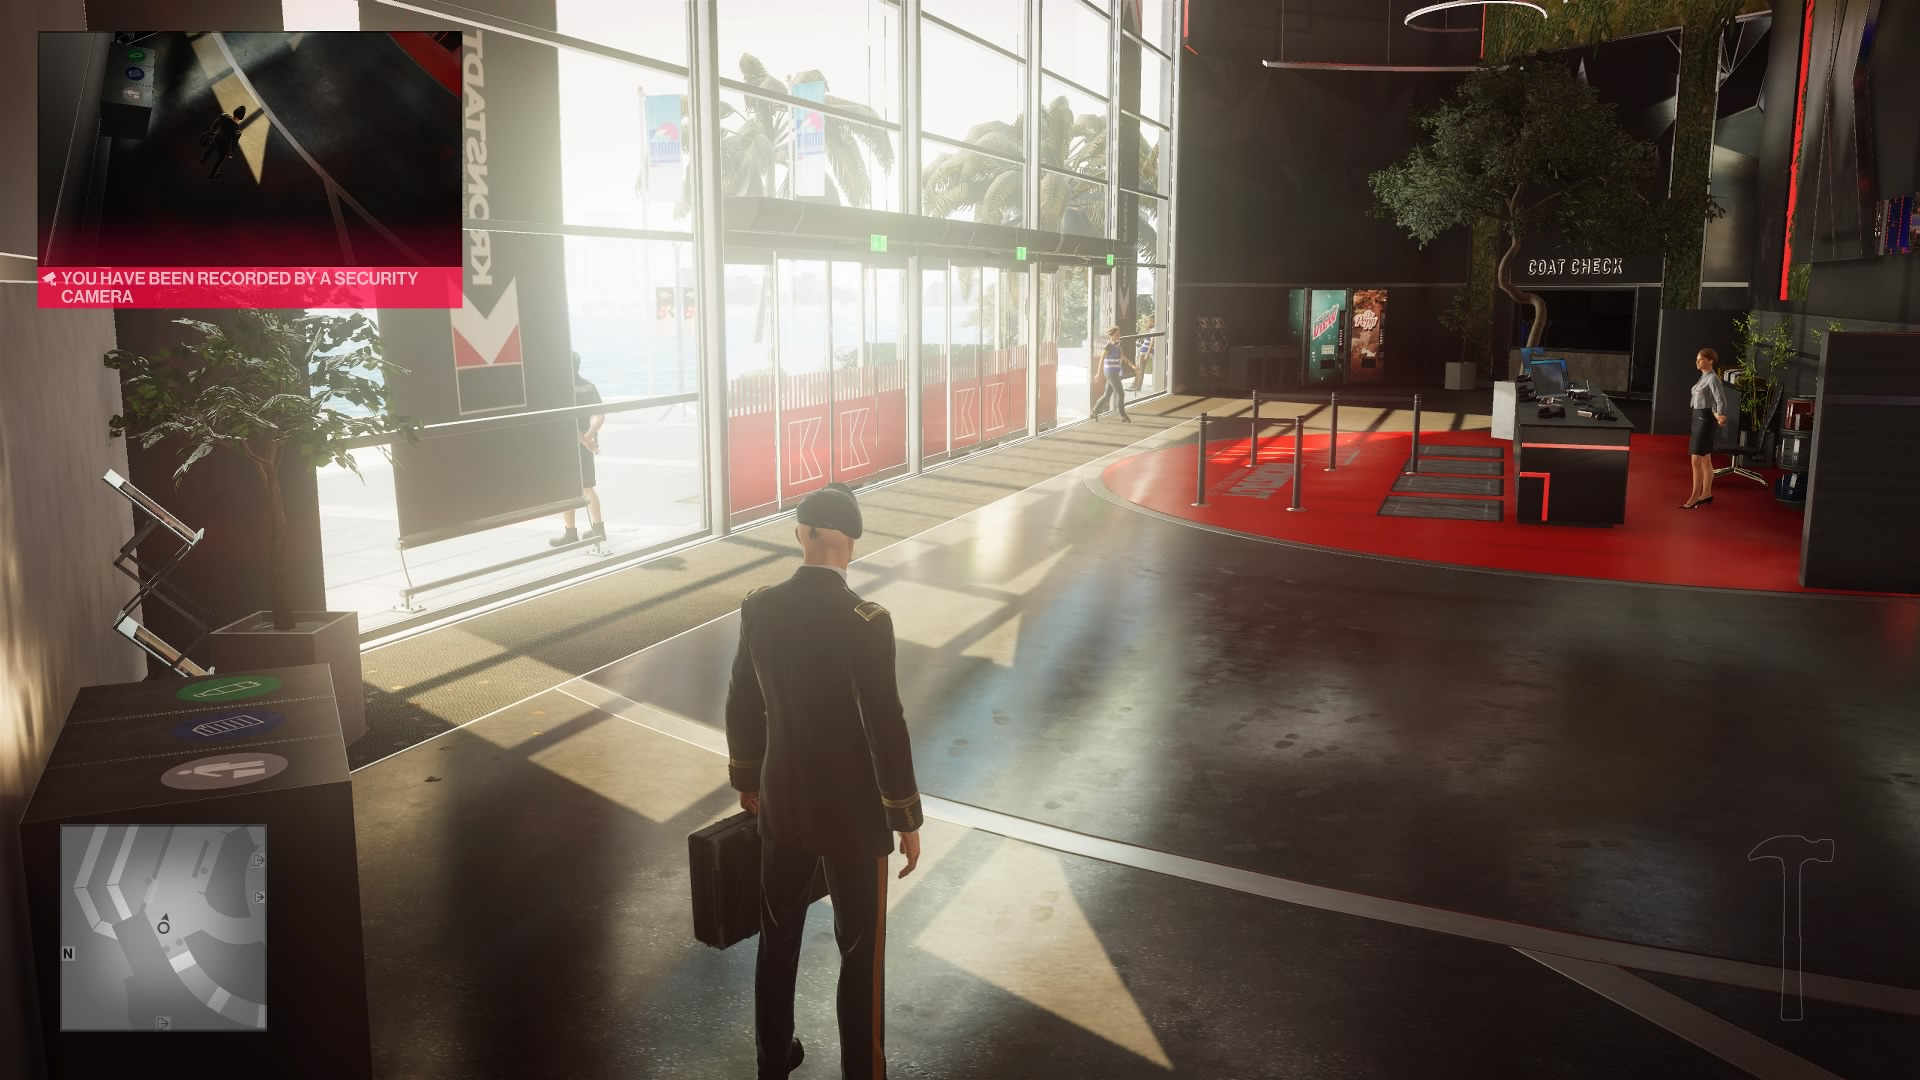 Hitman 2 picture in picture